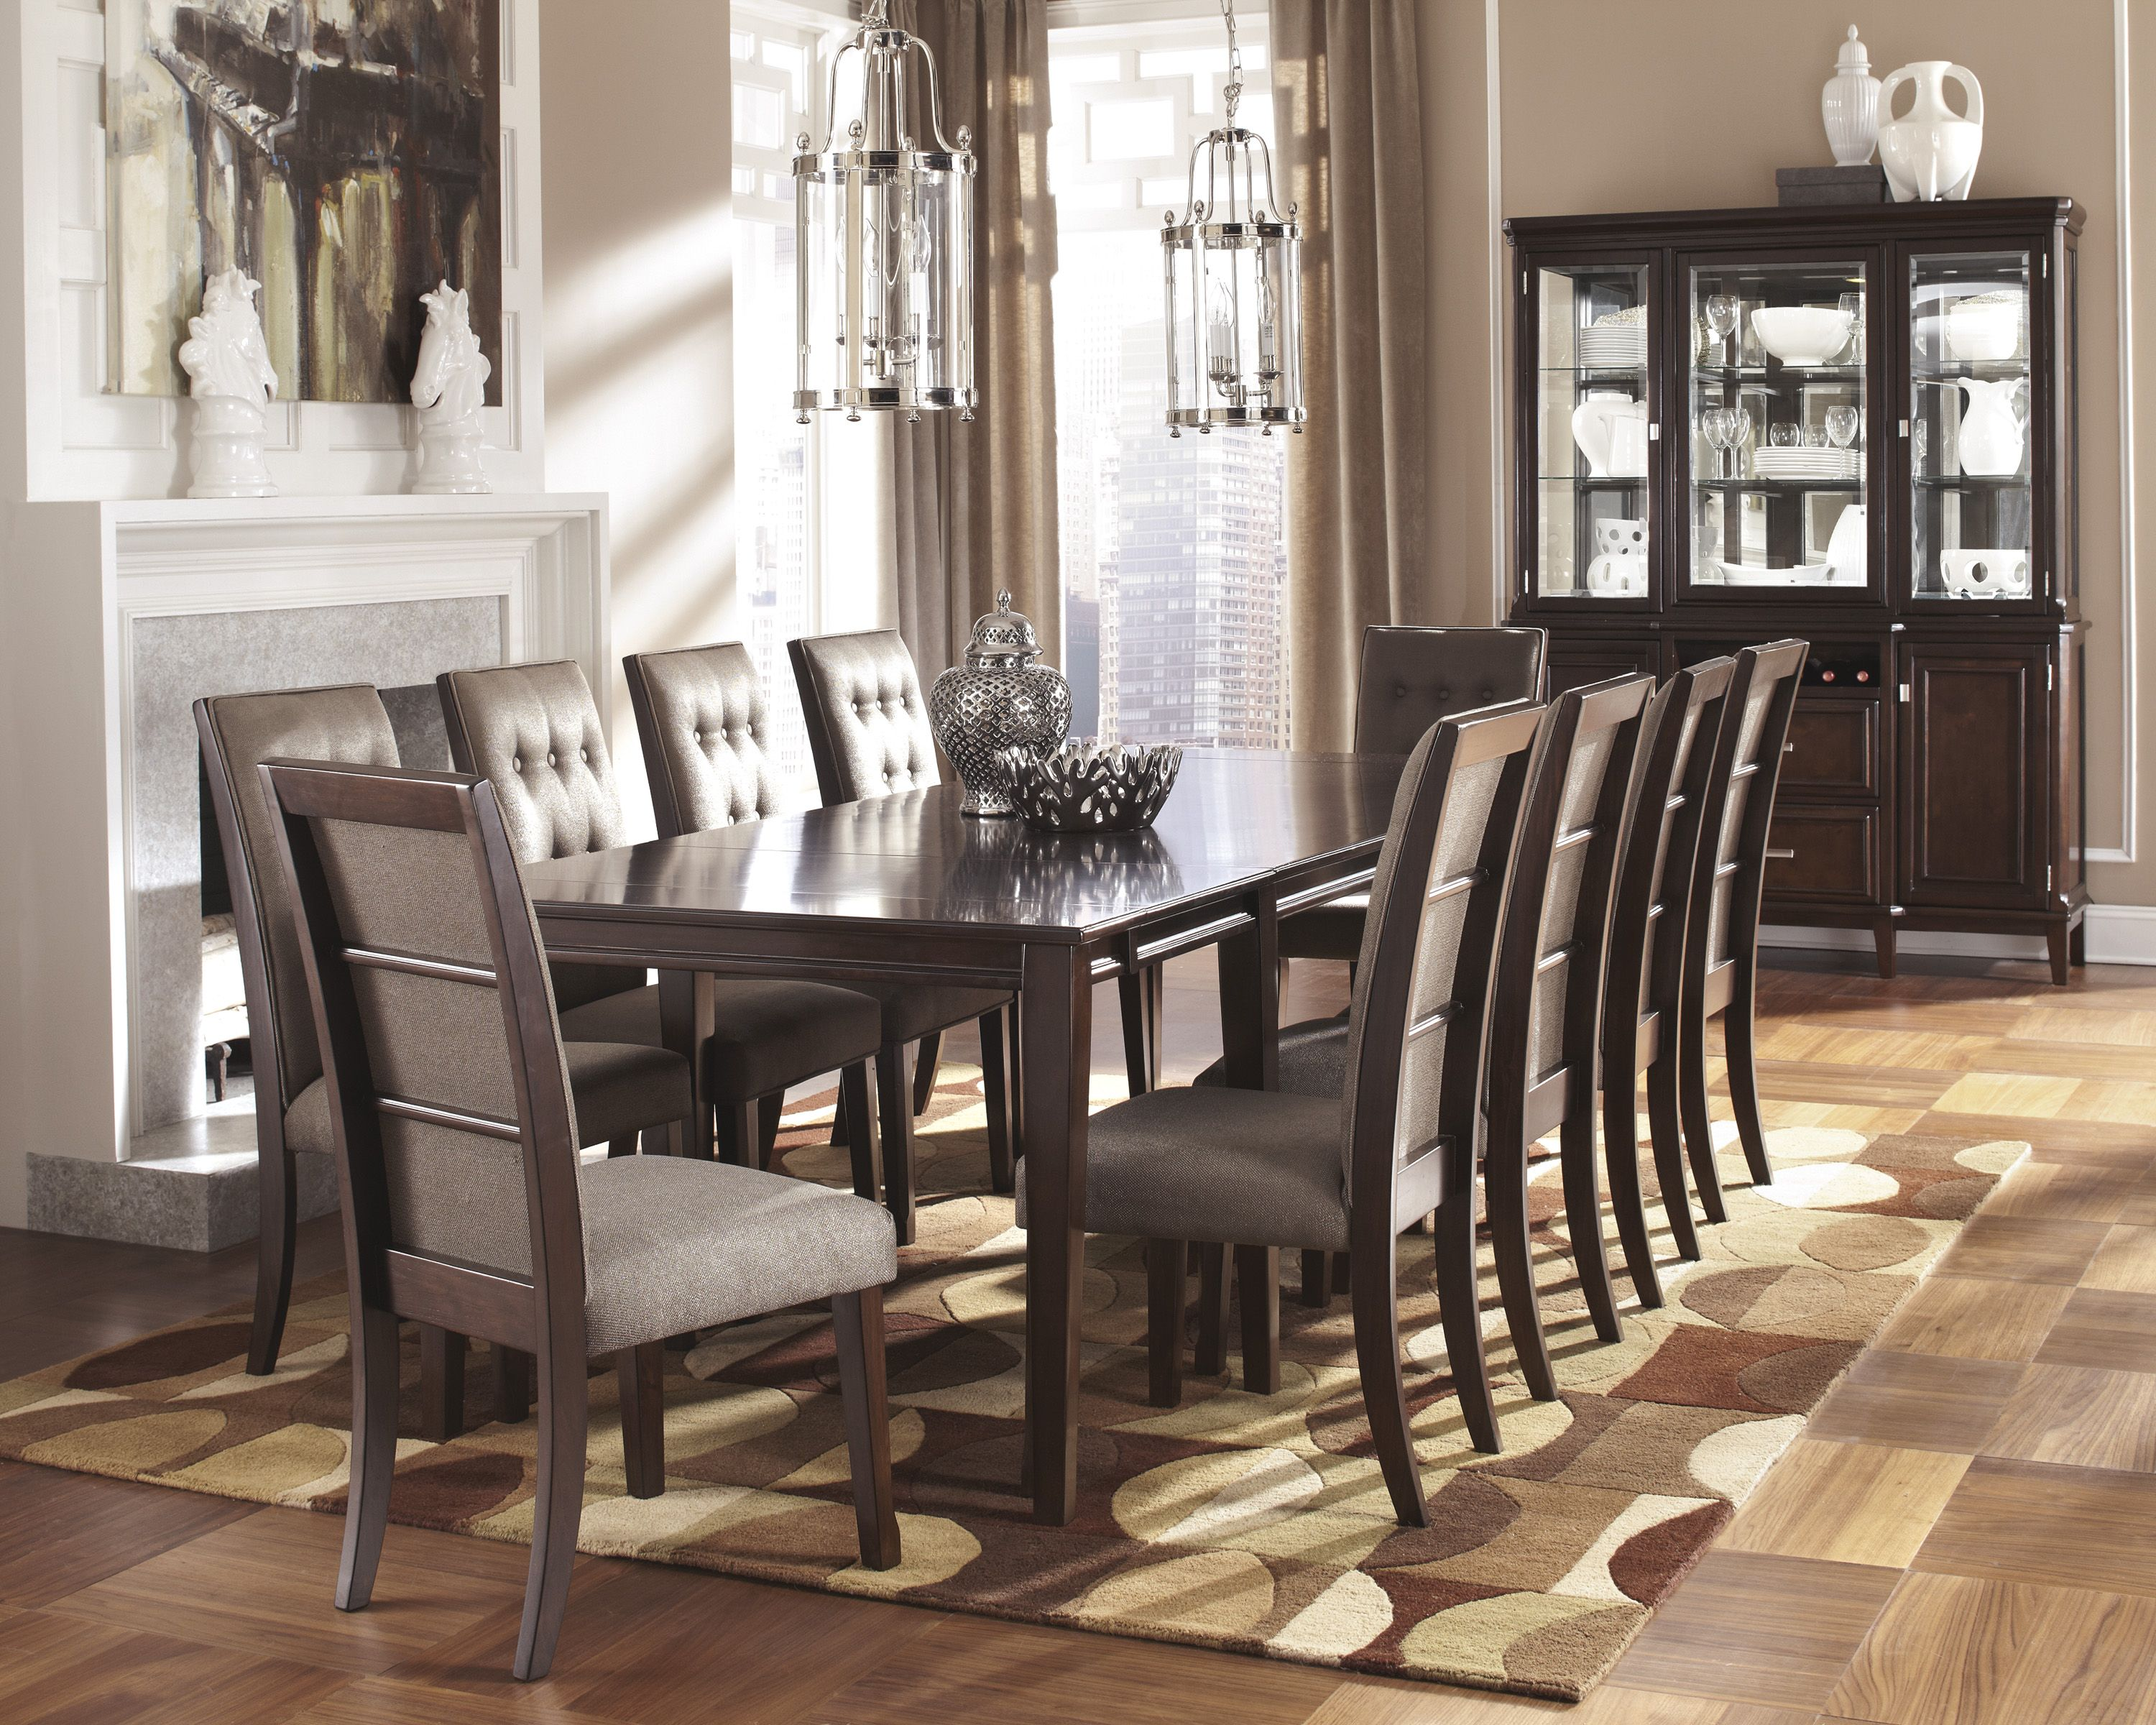 Unique Dining Room From Midas Pin Repin Diningroom Table